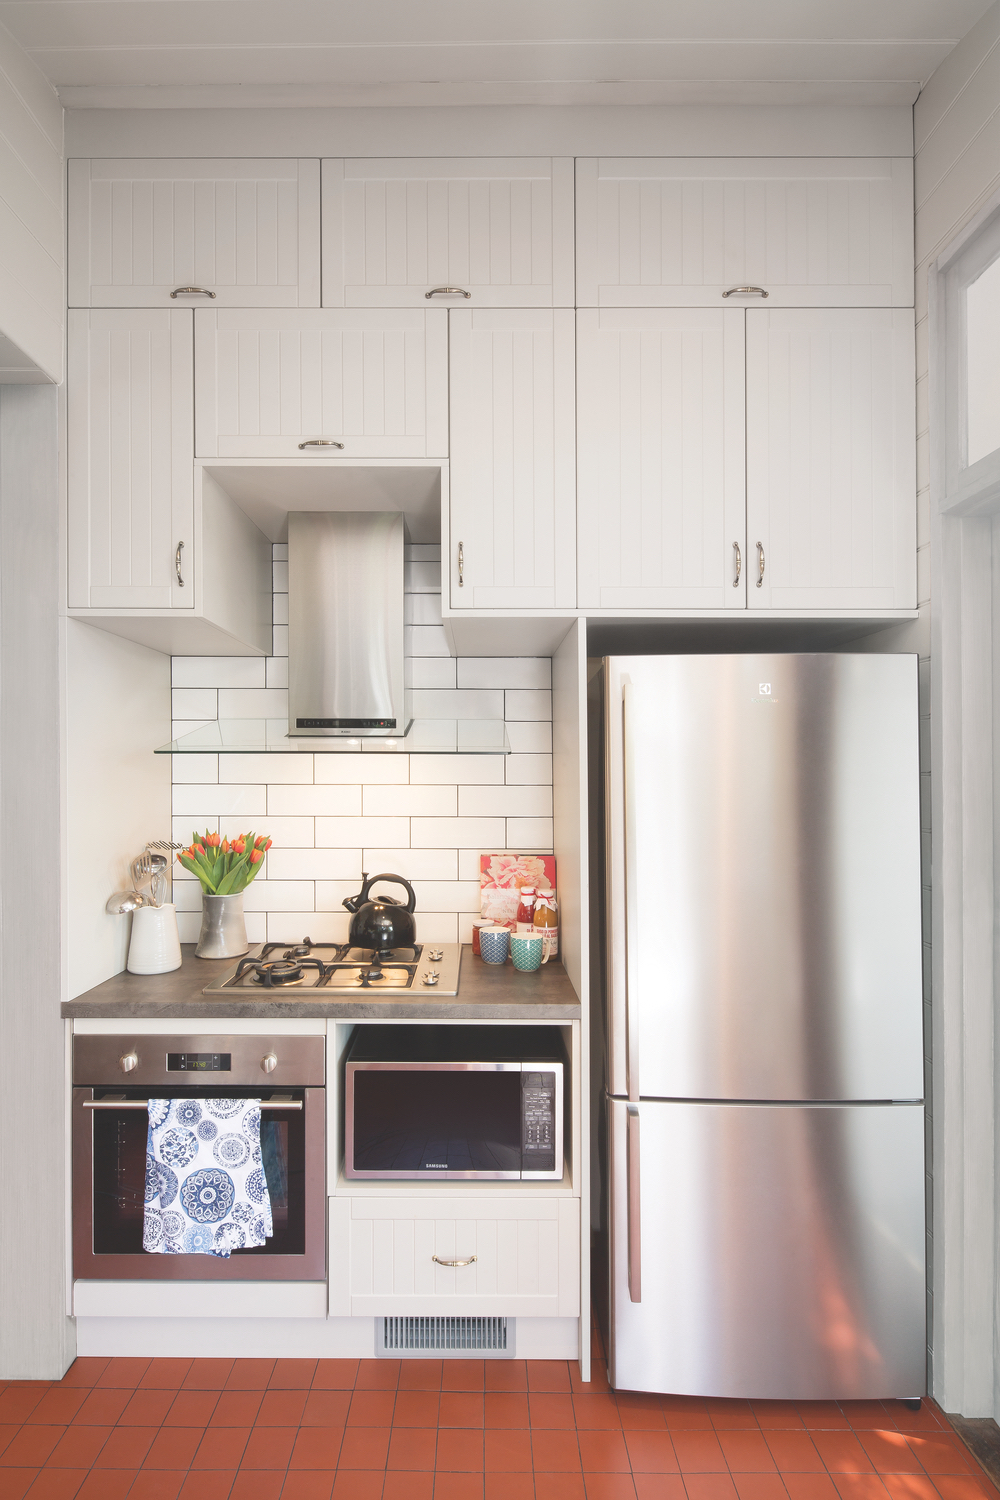 Light and Airy - kitchen inspiration and ideas | kaboodle ...